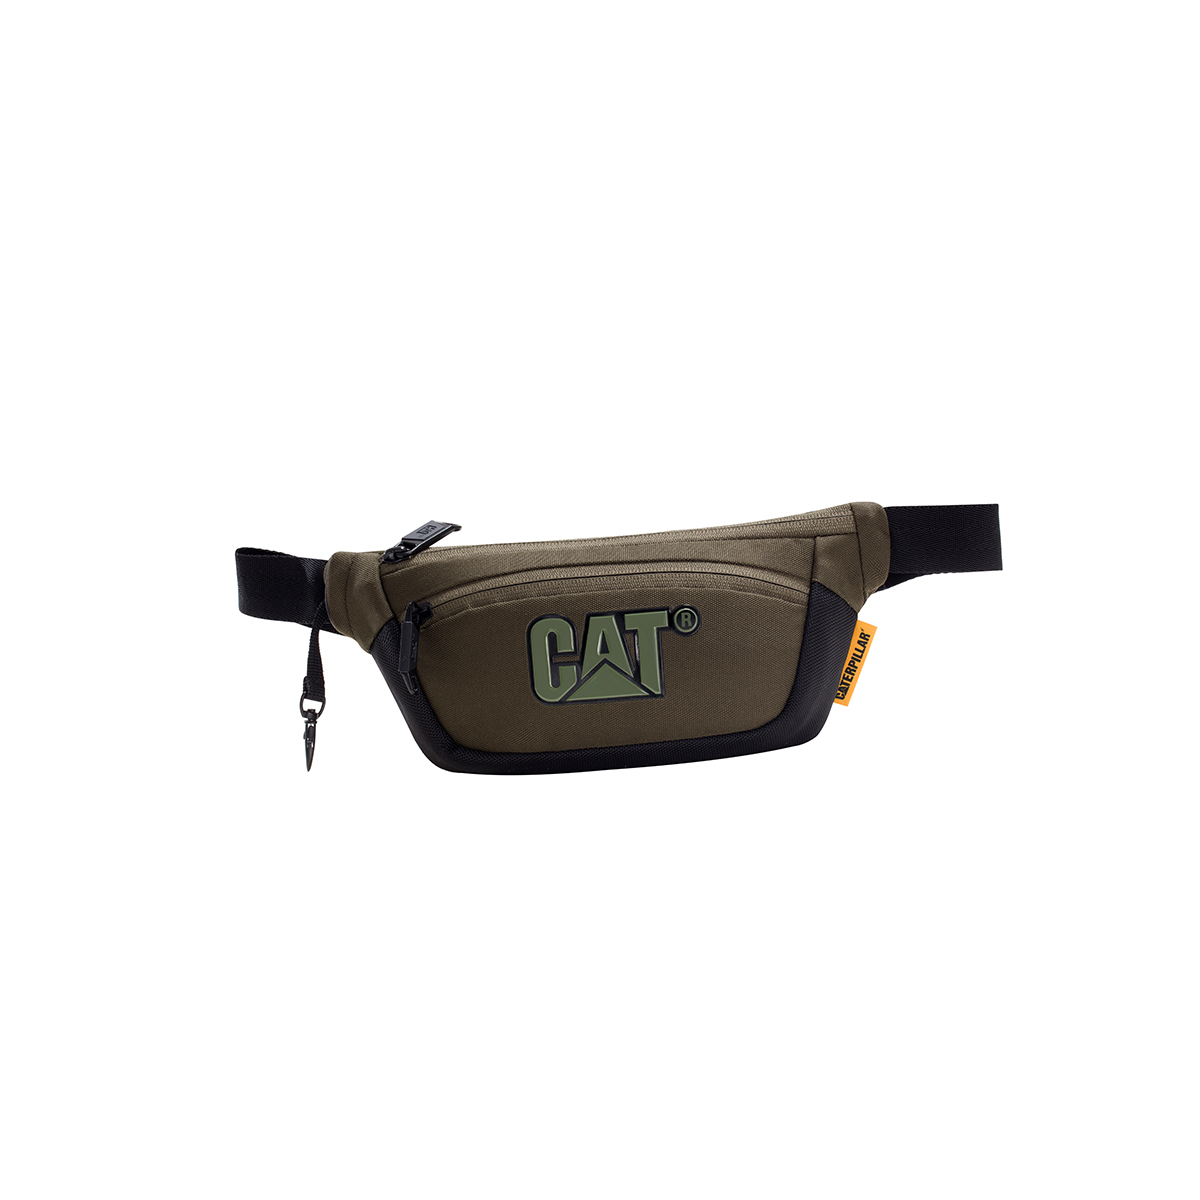 Jual Caterpillar Joe Tas Selempang Pria - Green Caterpillar Bags   Luggage b676aef0a6